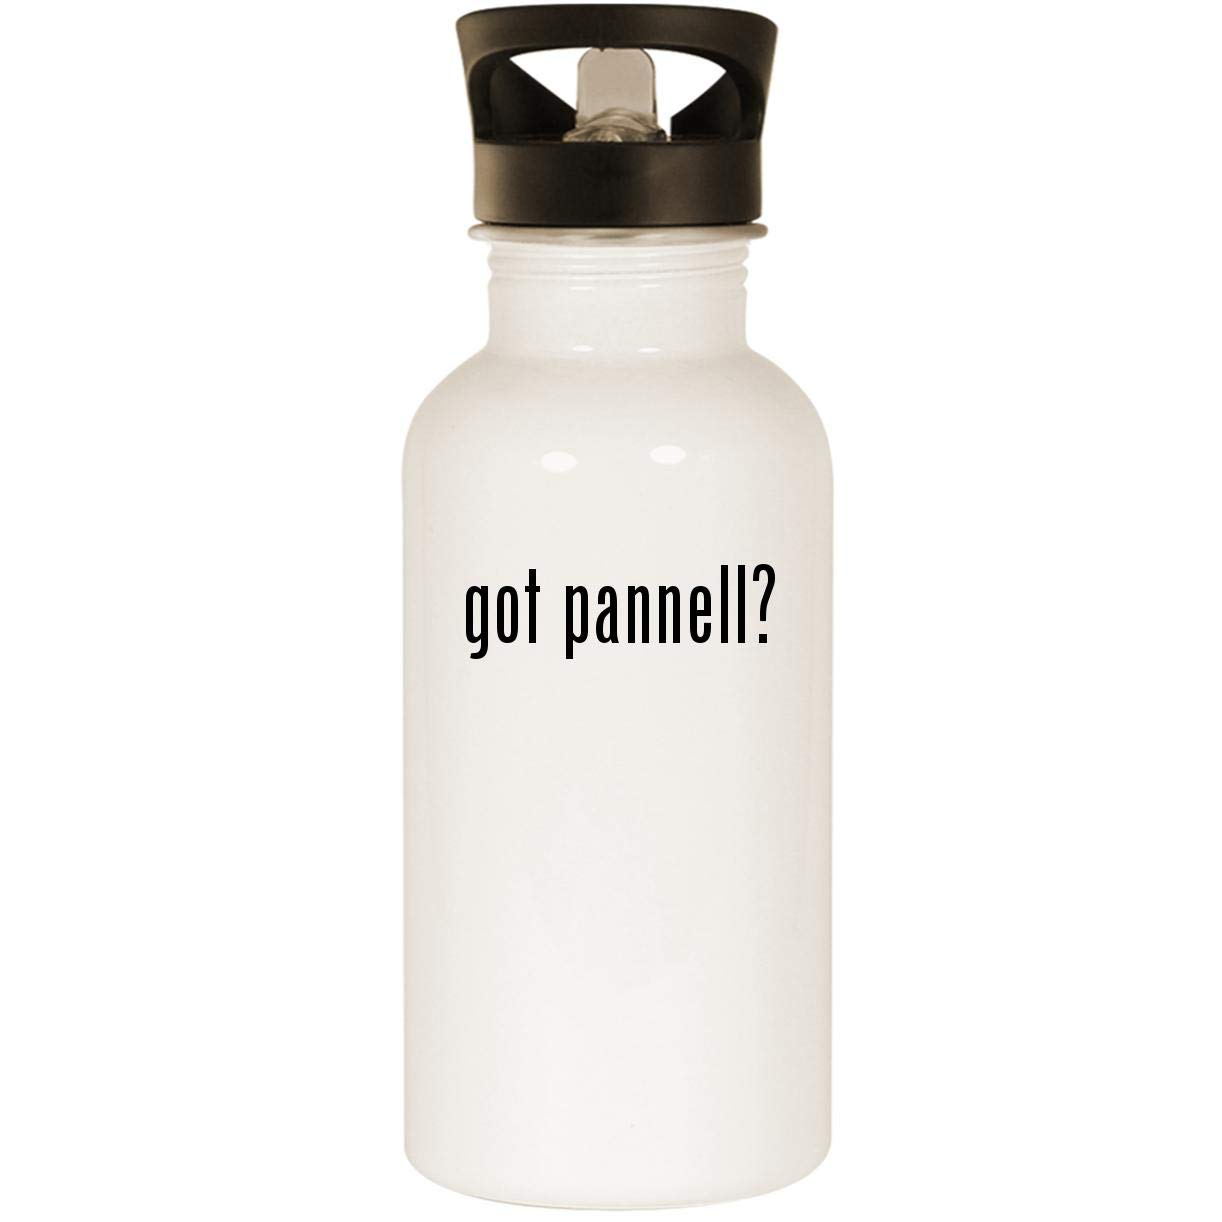 got pannell? - Stainless Steel 20oz Road Ready Water Bottle, White